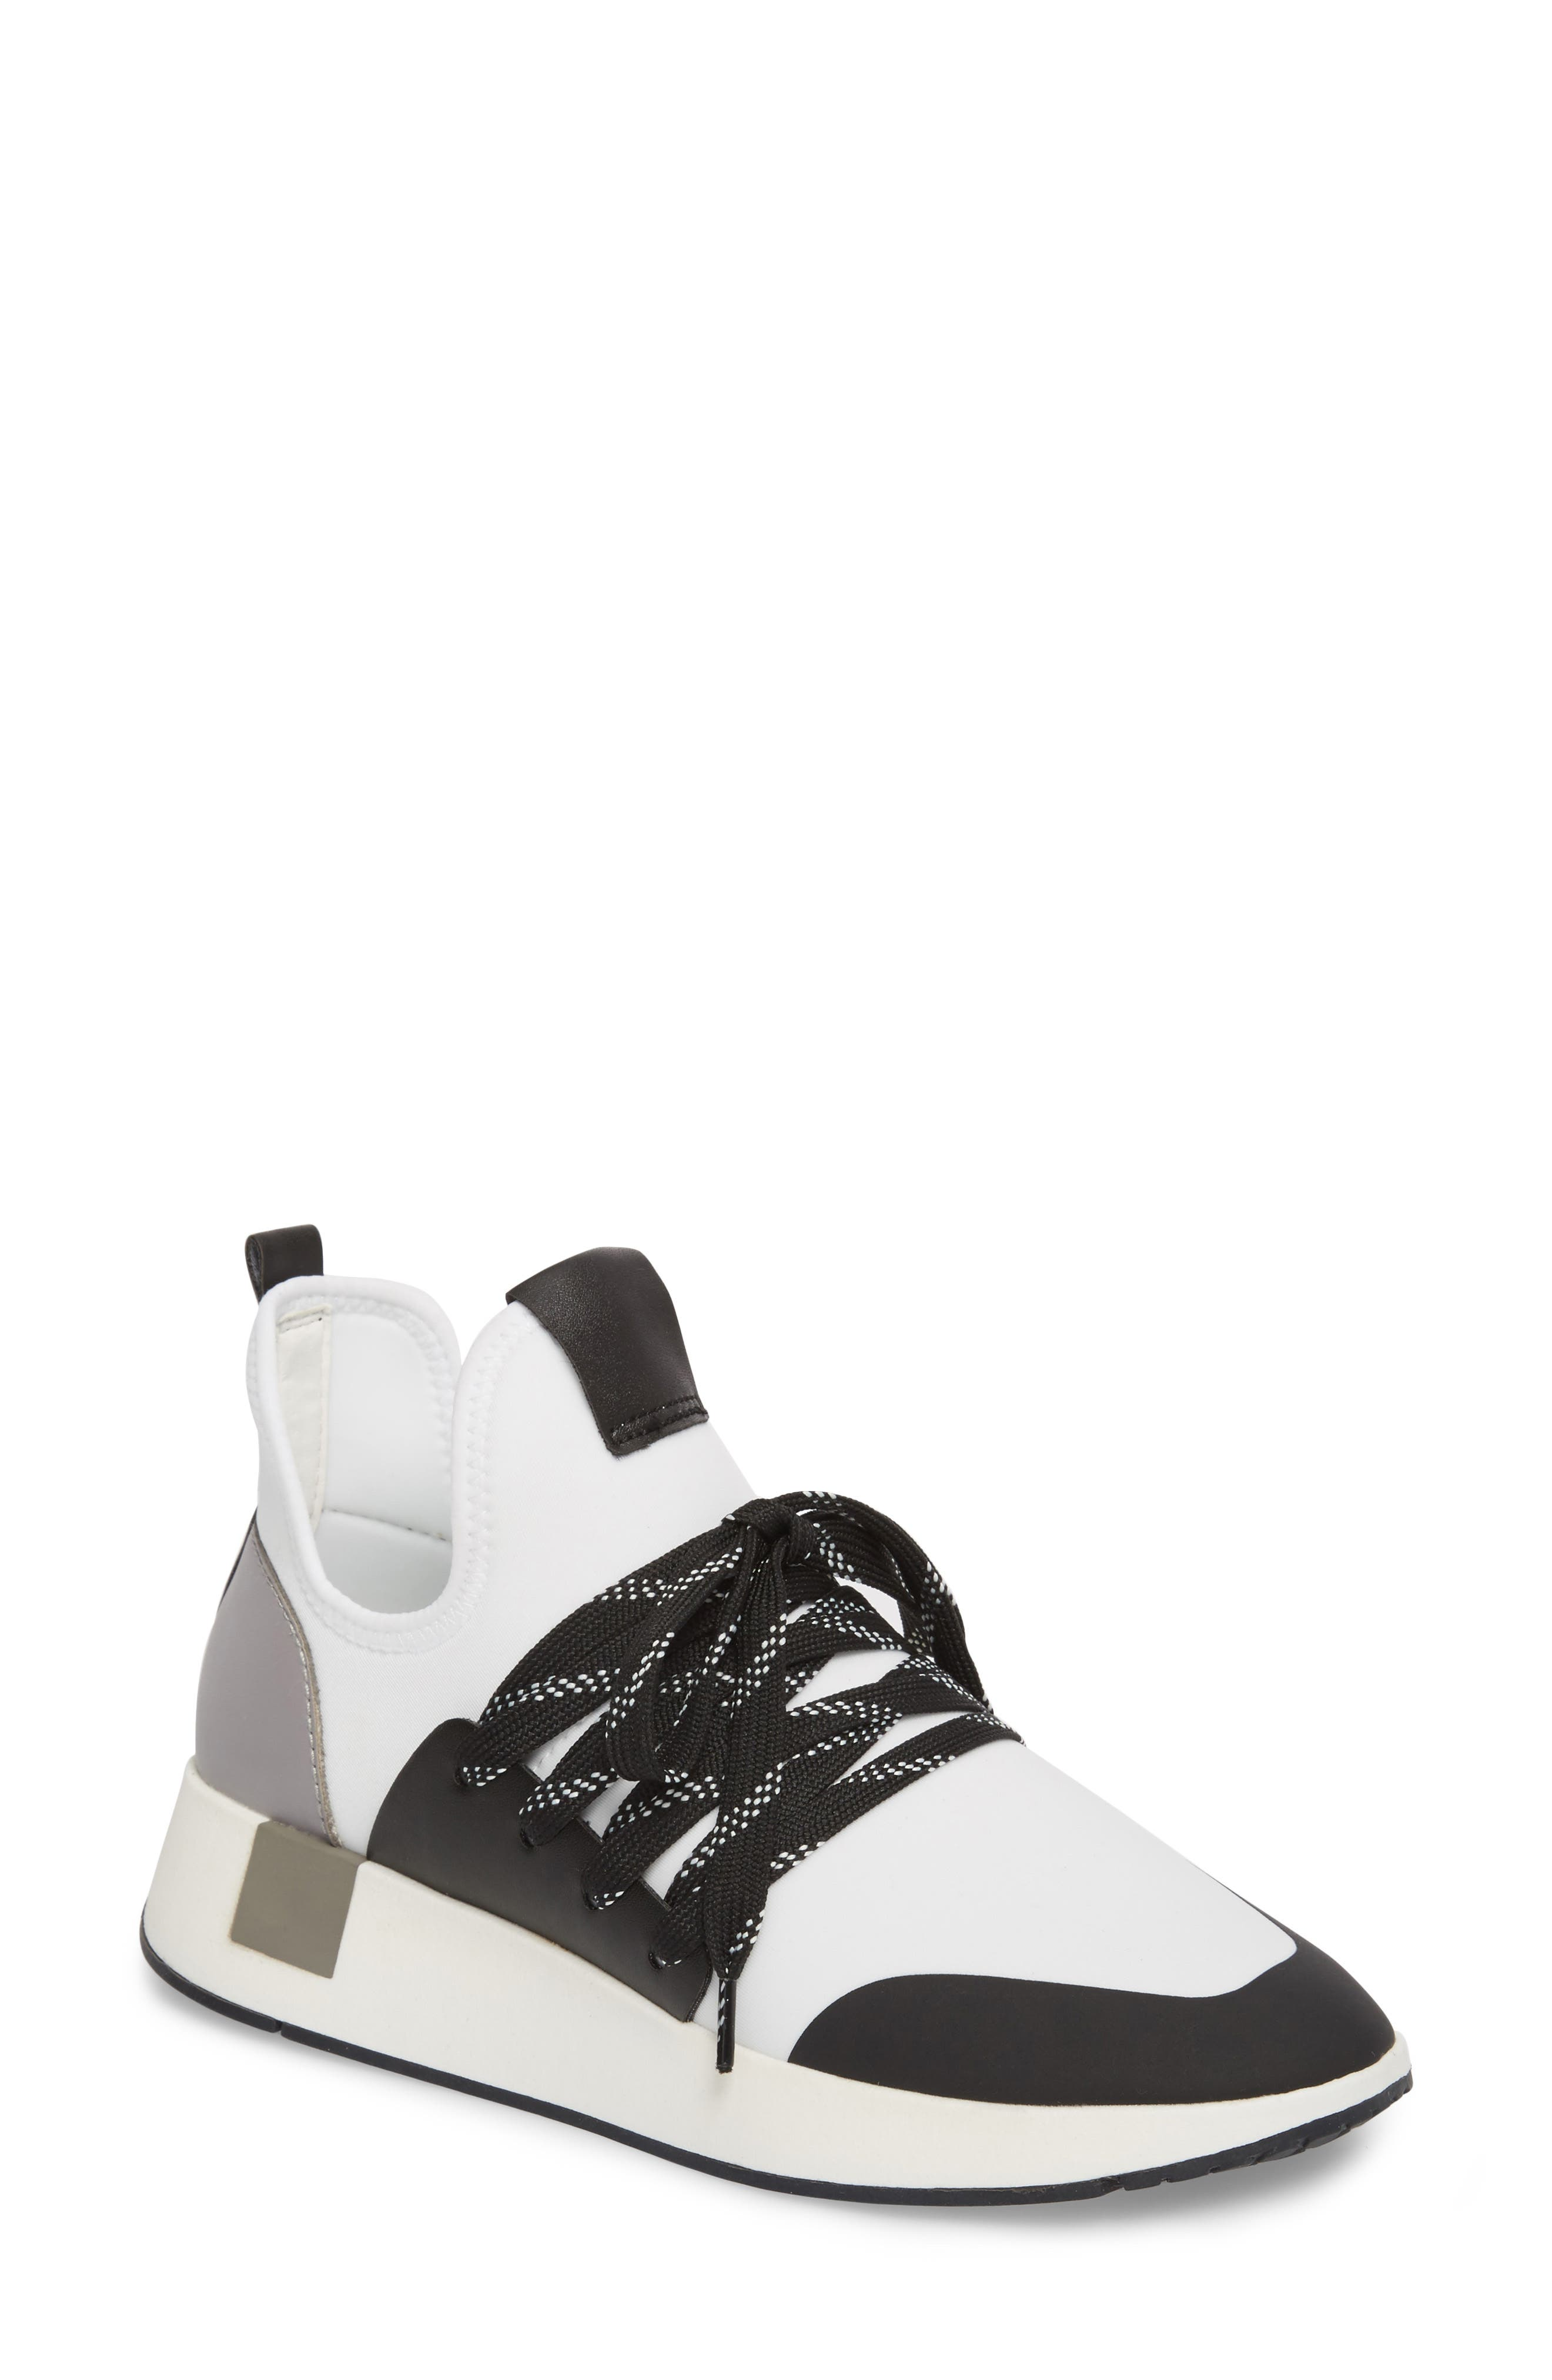 Shady Sneaker,                         Main,                         color, White Multi